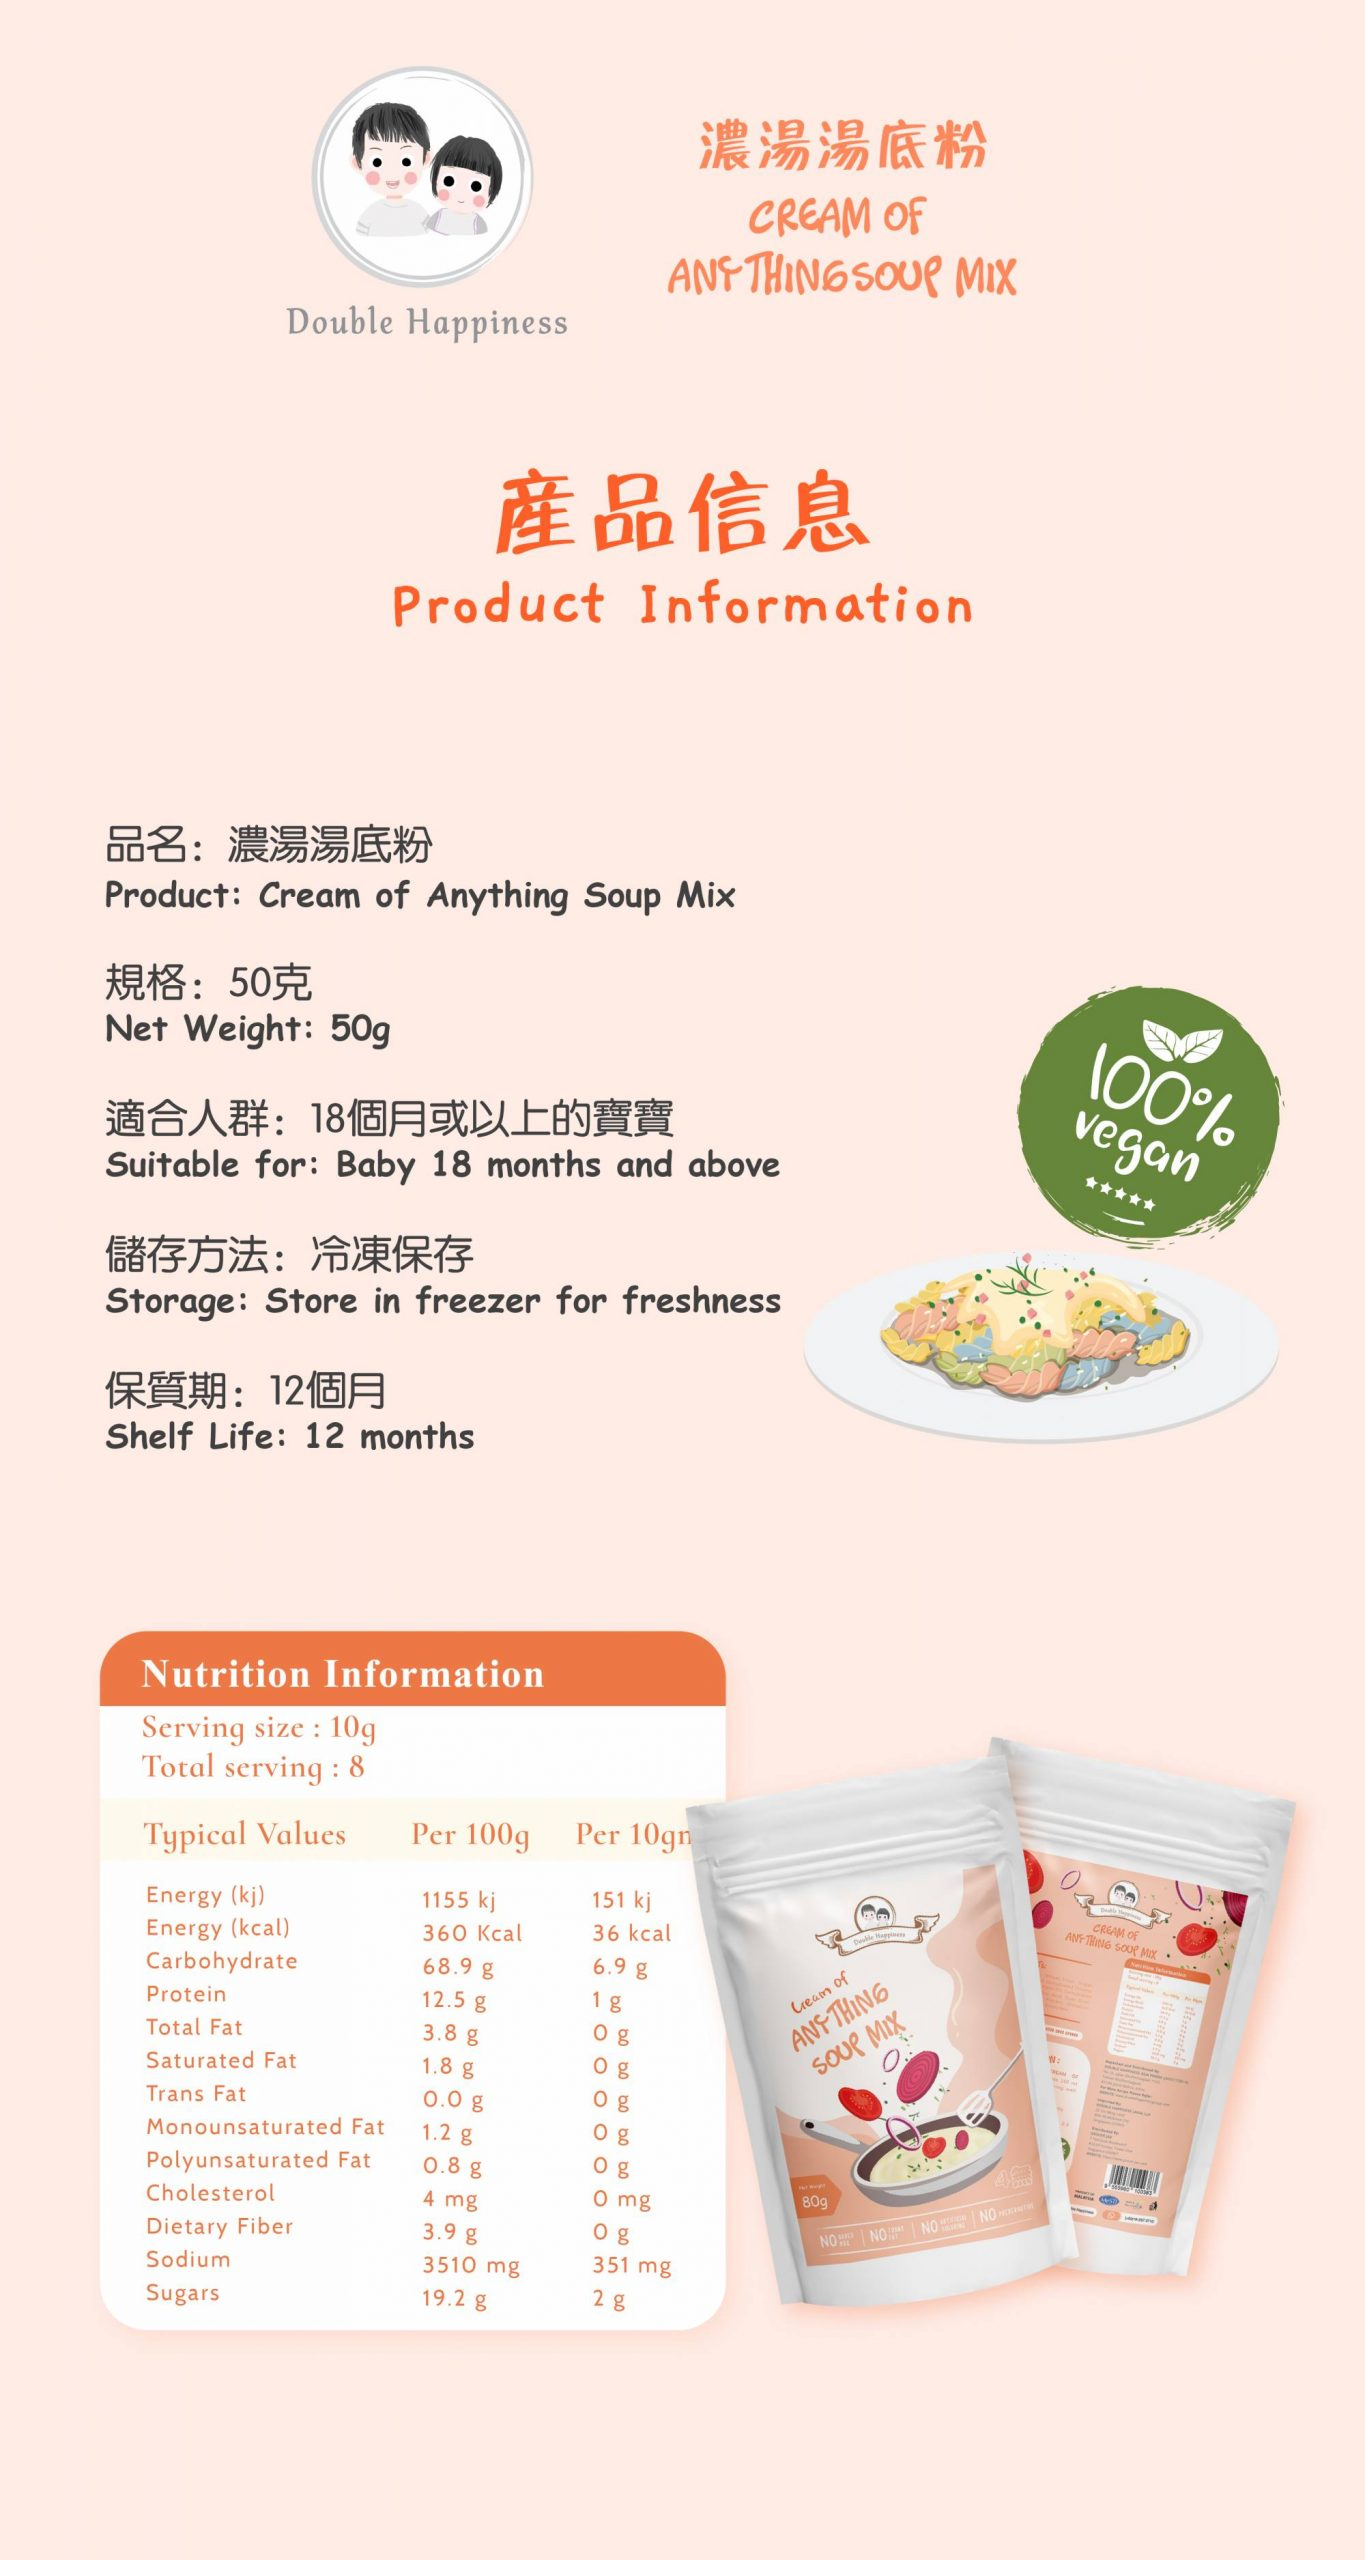 Cream of Anything Soup product information